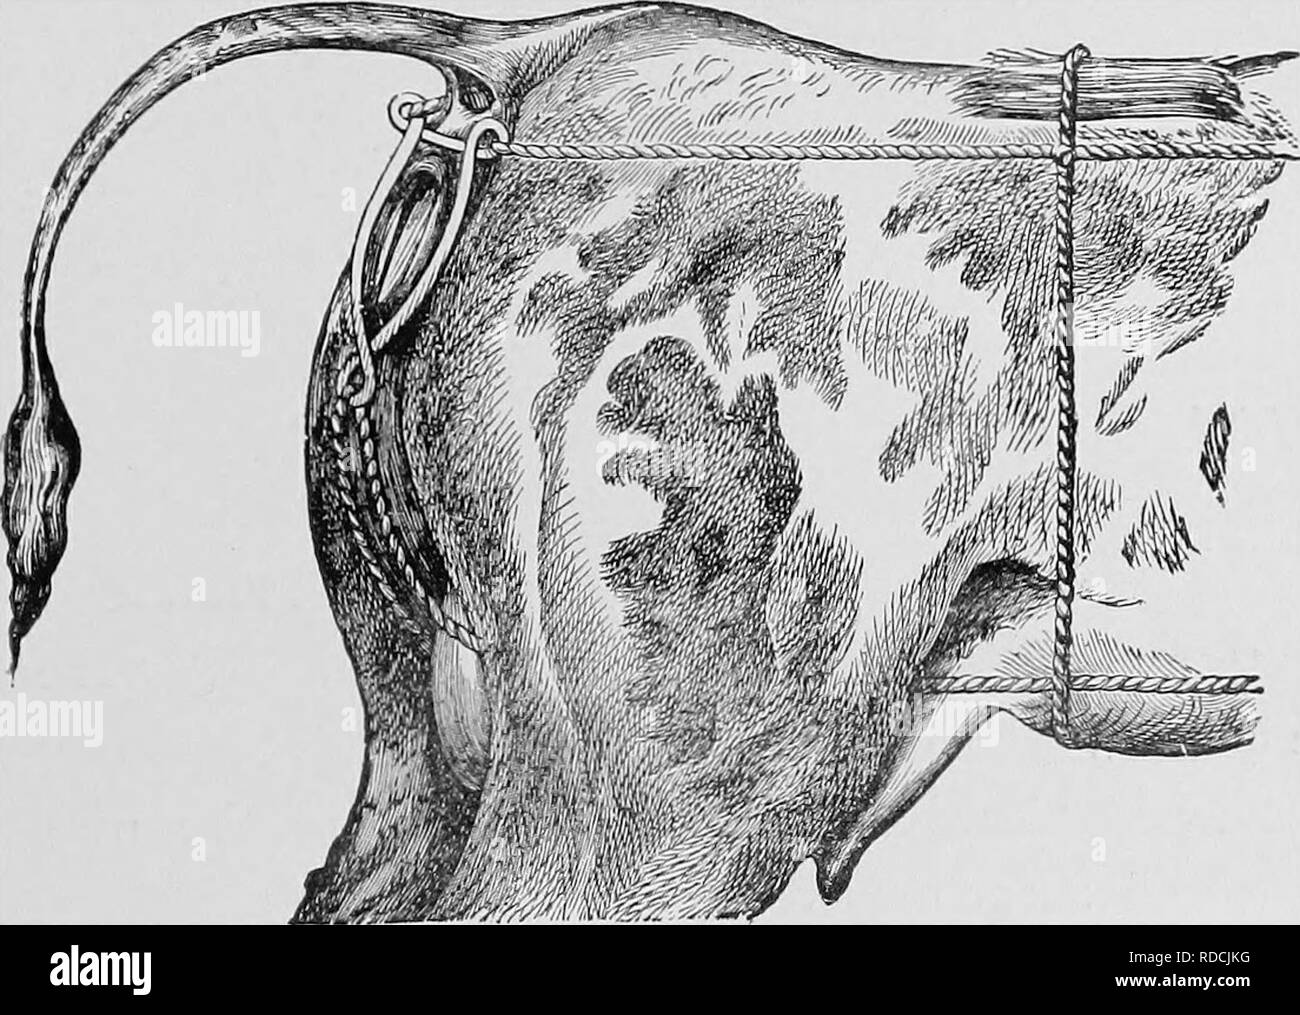 """. Veterinary obstetrics; a compendium for the use of students and practitioners. Veterinary obstetrics. ACCIDENTS FOLLOWING PARTURITION. 109 """"NA'^hen sutures are adopted, it is better to use some of â each; two Hip, and two or three Labial, being quite sufficient to retain the uterus in position. Another very common method is by a truss, which may be composed of leather, webbing, or rope, and """"when the former of these is properly made, it is easy to affix it to a roller round the chest, or waist.. Fig. 50. Lund's Truss Applied. In the absence of a truss, a rope, 25 to 30 feet long, m - Stock Image"""